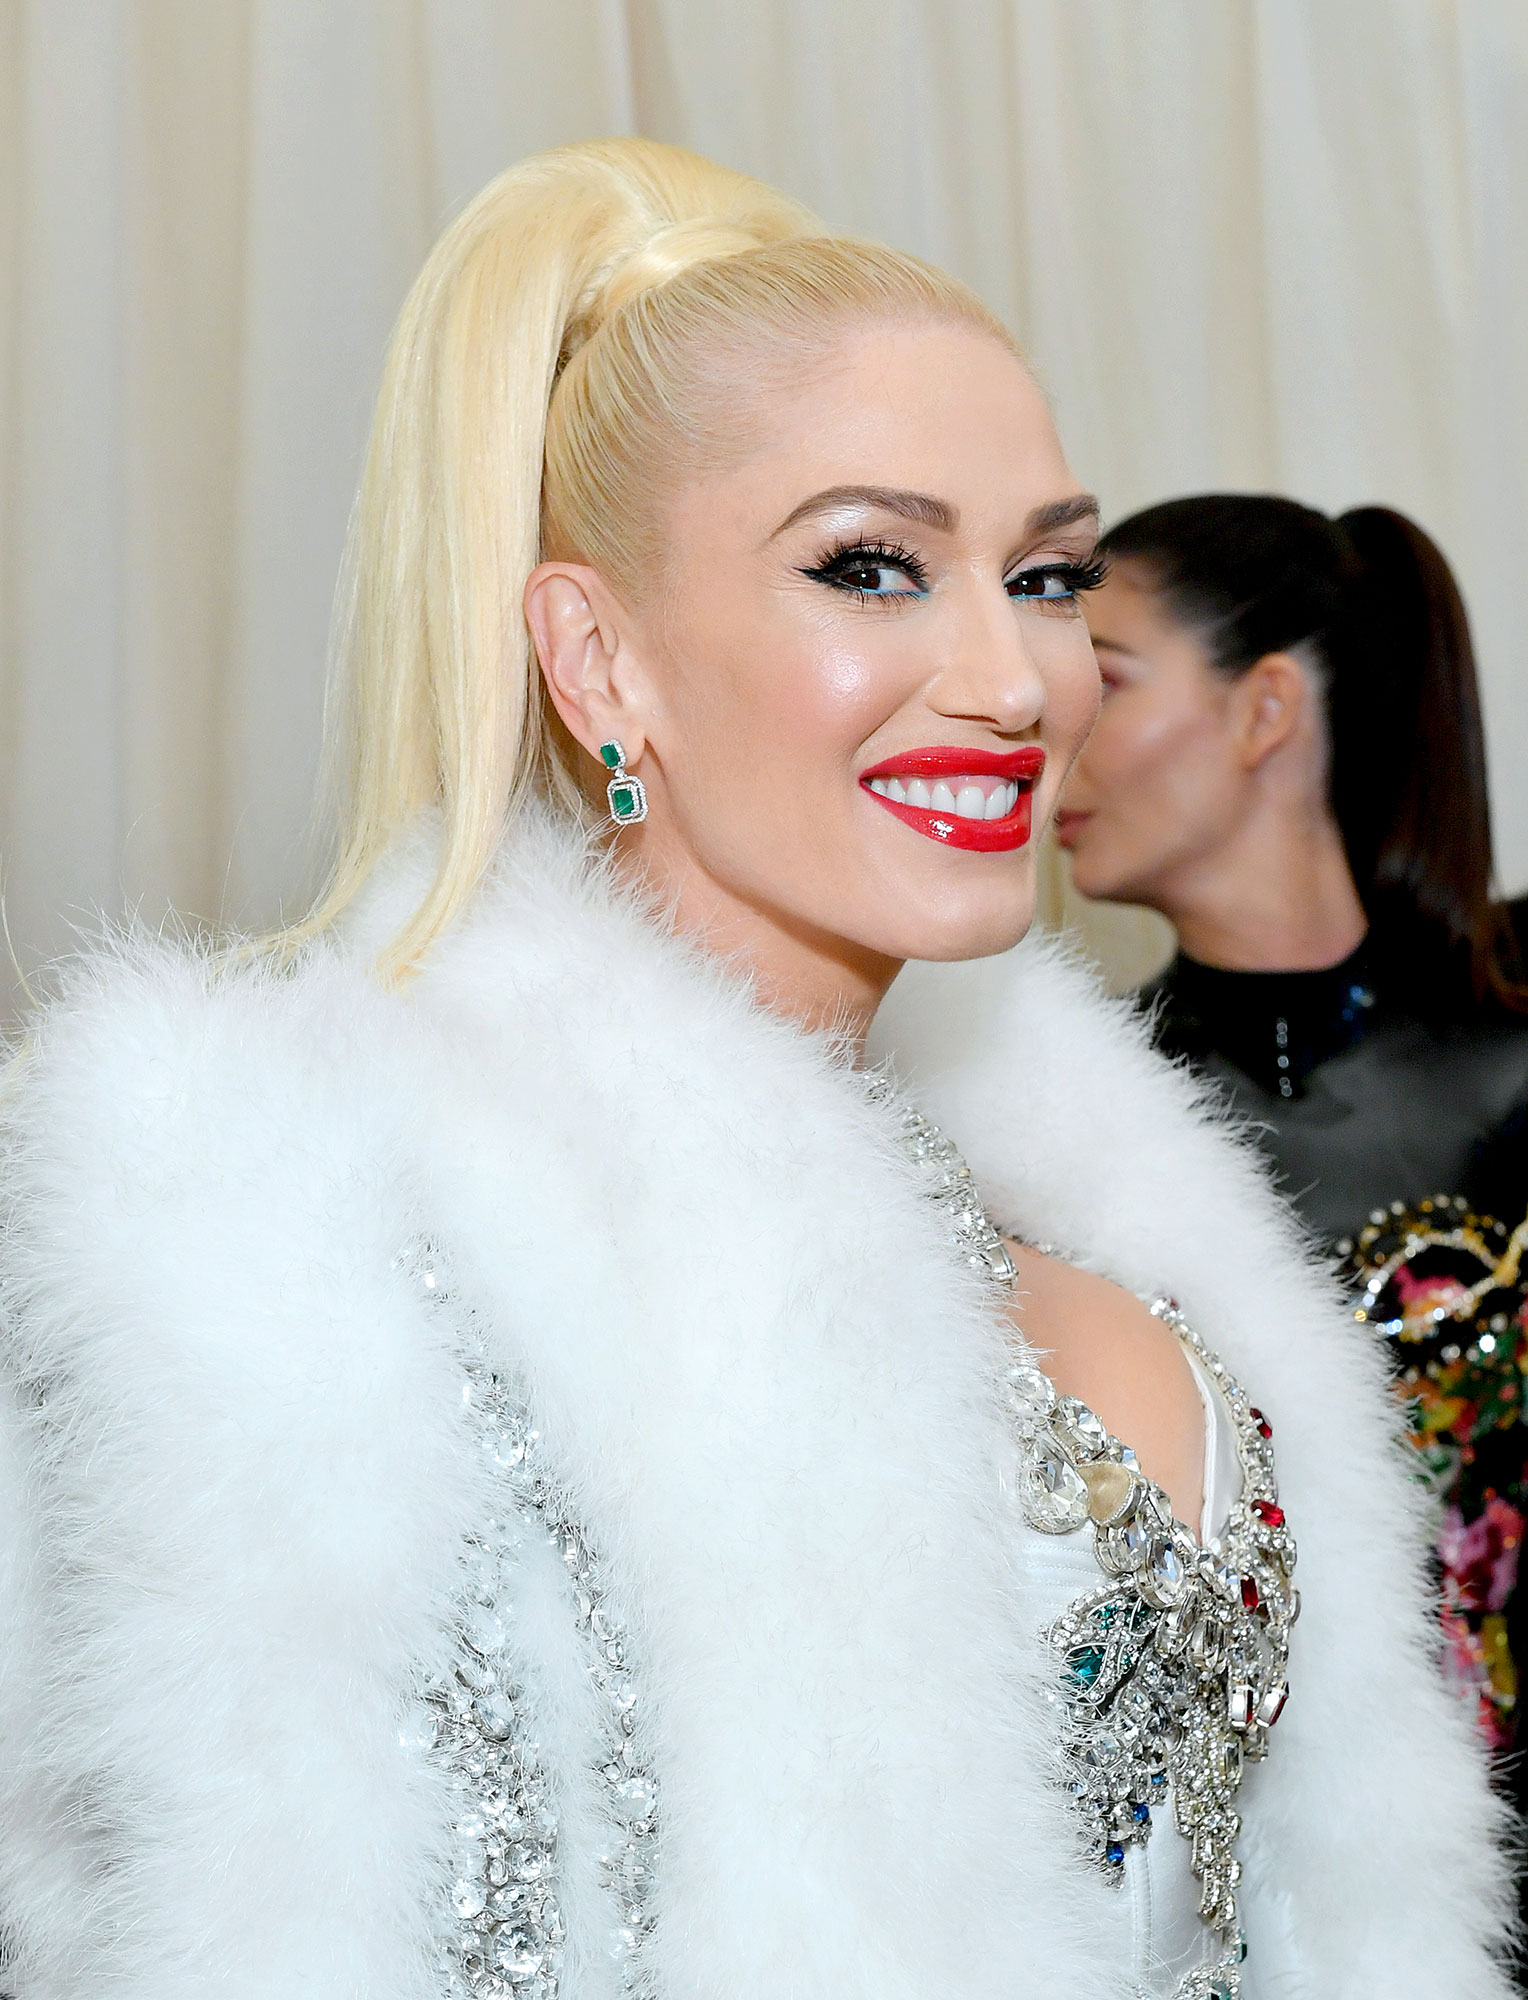 Gwen Stefani Fresh Cat Eye - For a very minimal color addition, the platinum beauty added the tiniest bit of blue to the bottom waterline for her 2019 Met Gala makeup.